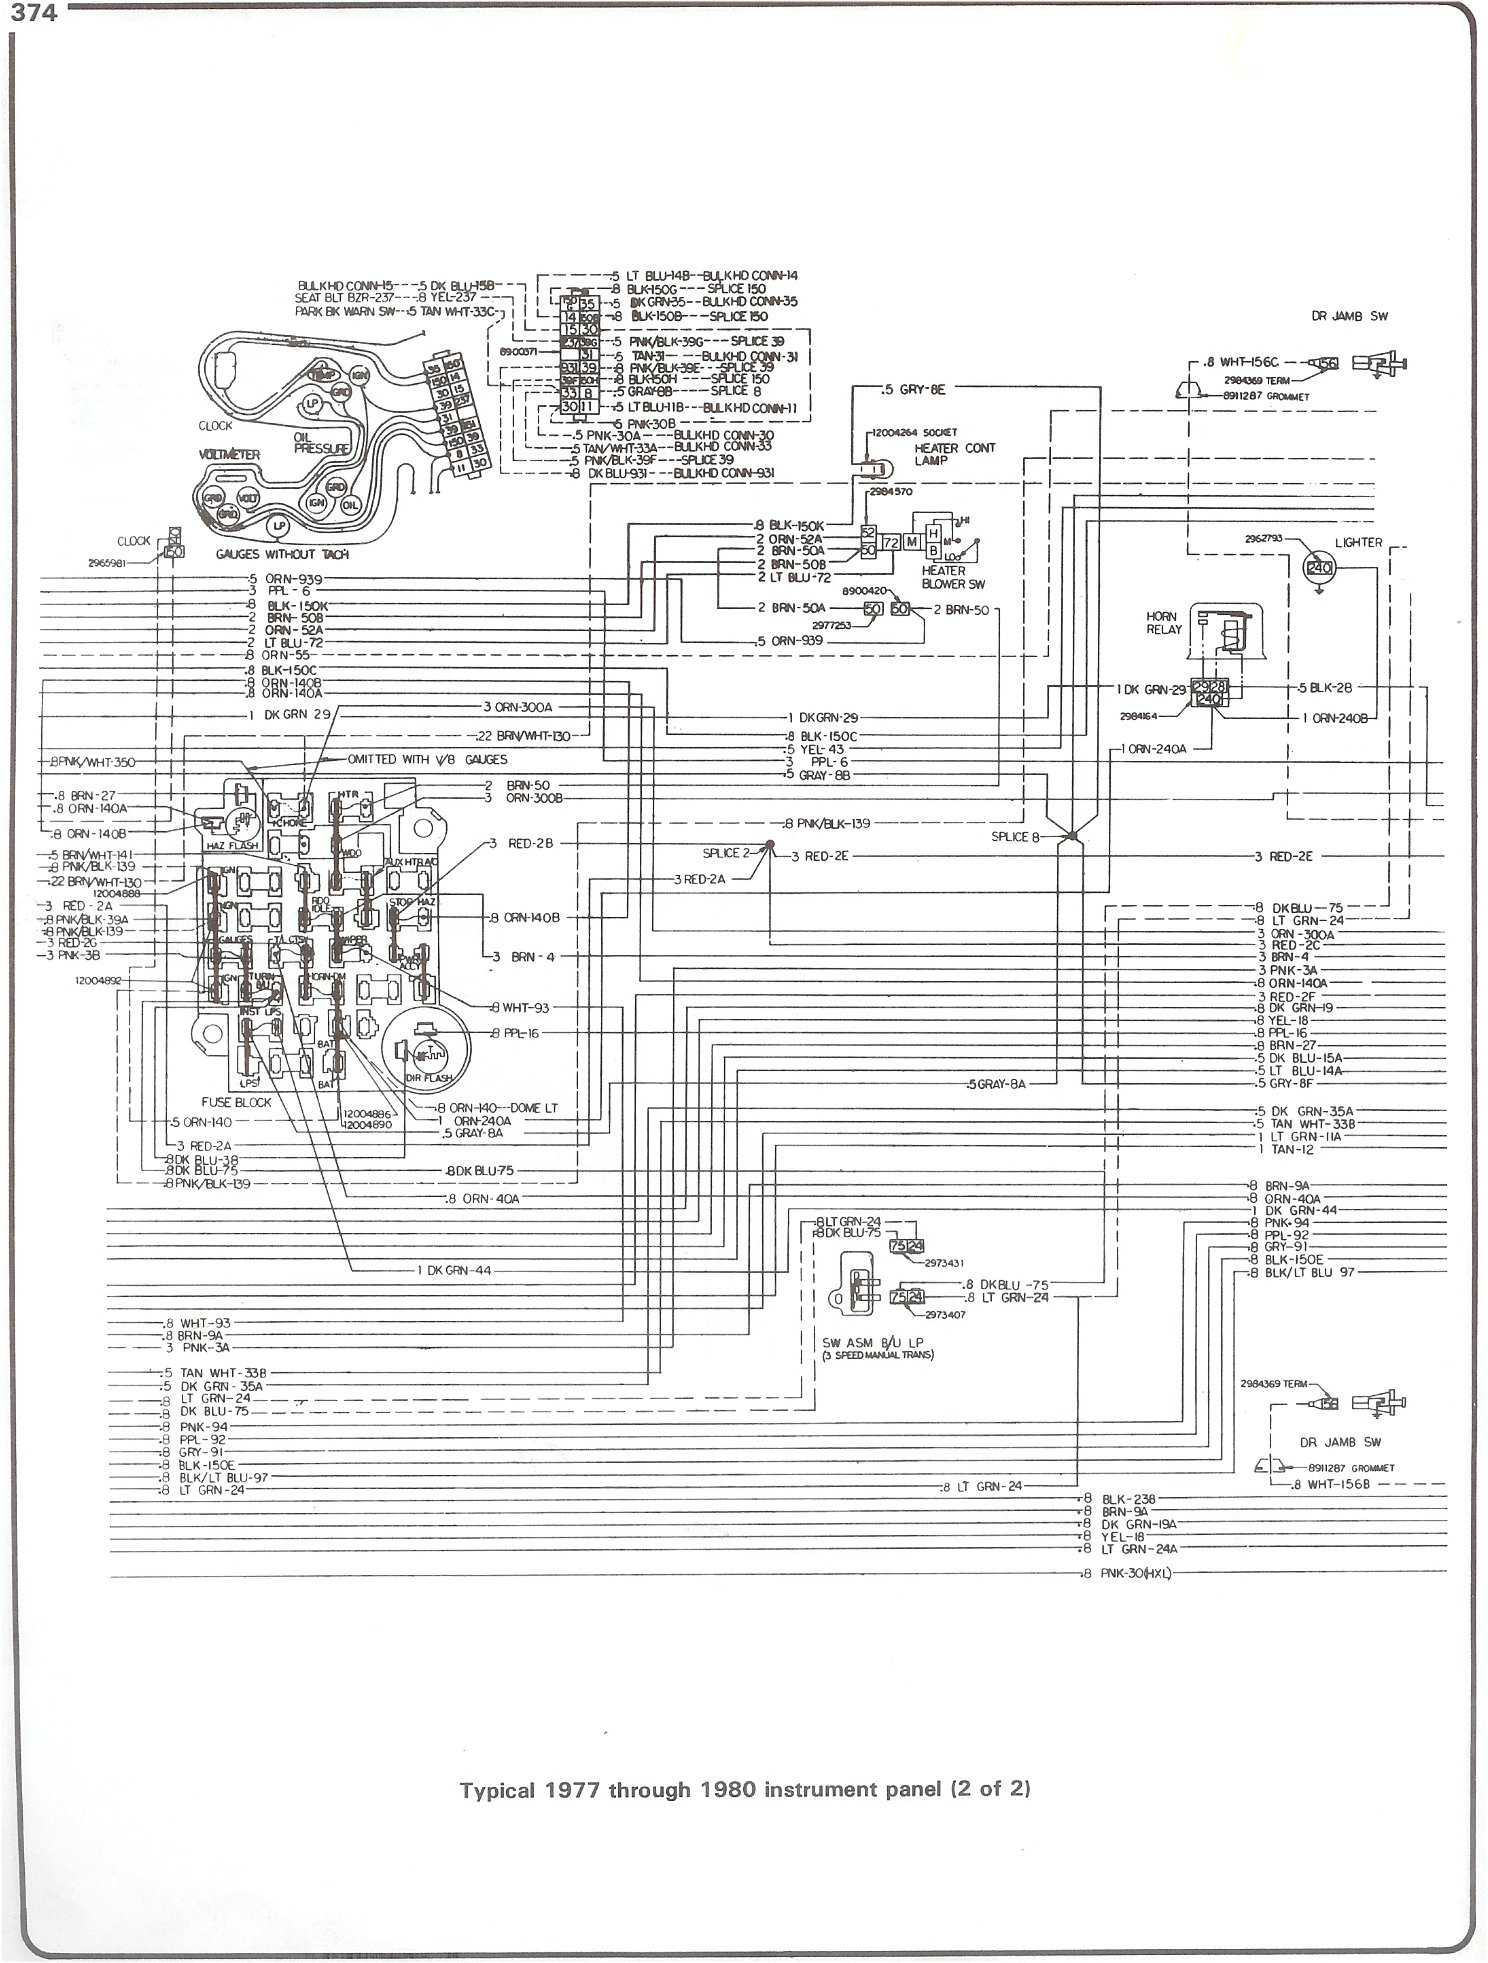 Complete 73 87 Wiring Diagrams 1982 Camaro Diagram Charging System 77 80 Intrument Panel Page 2